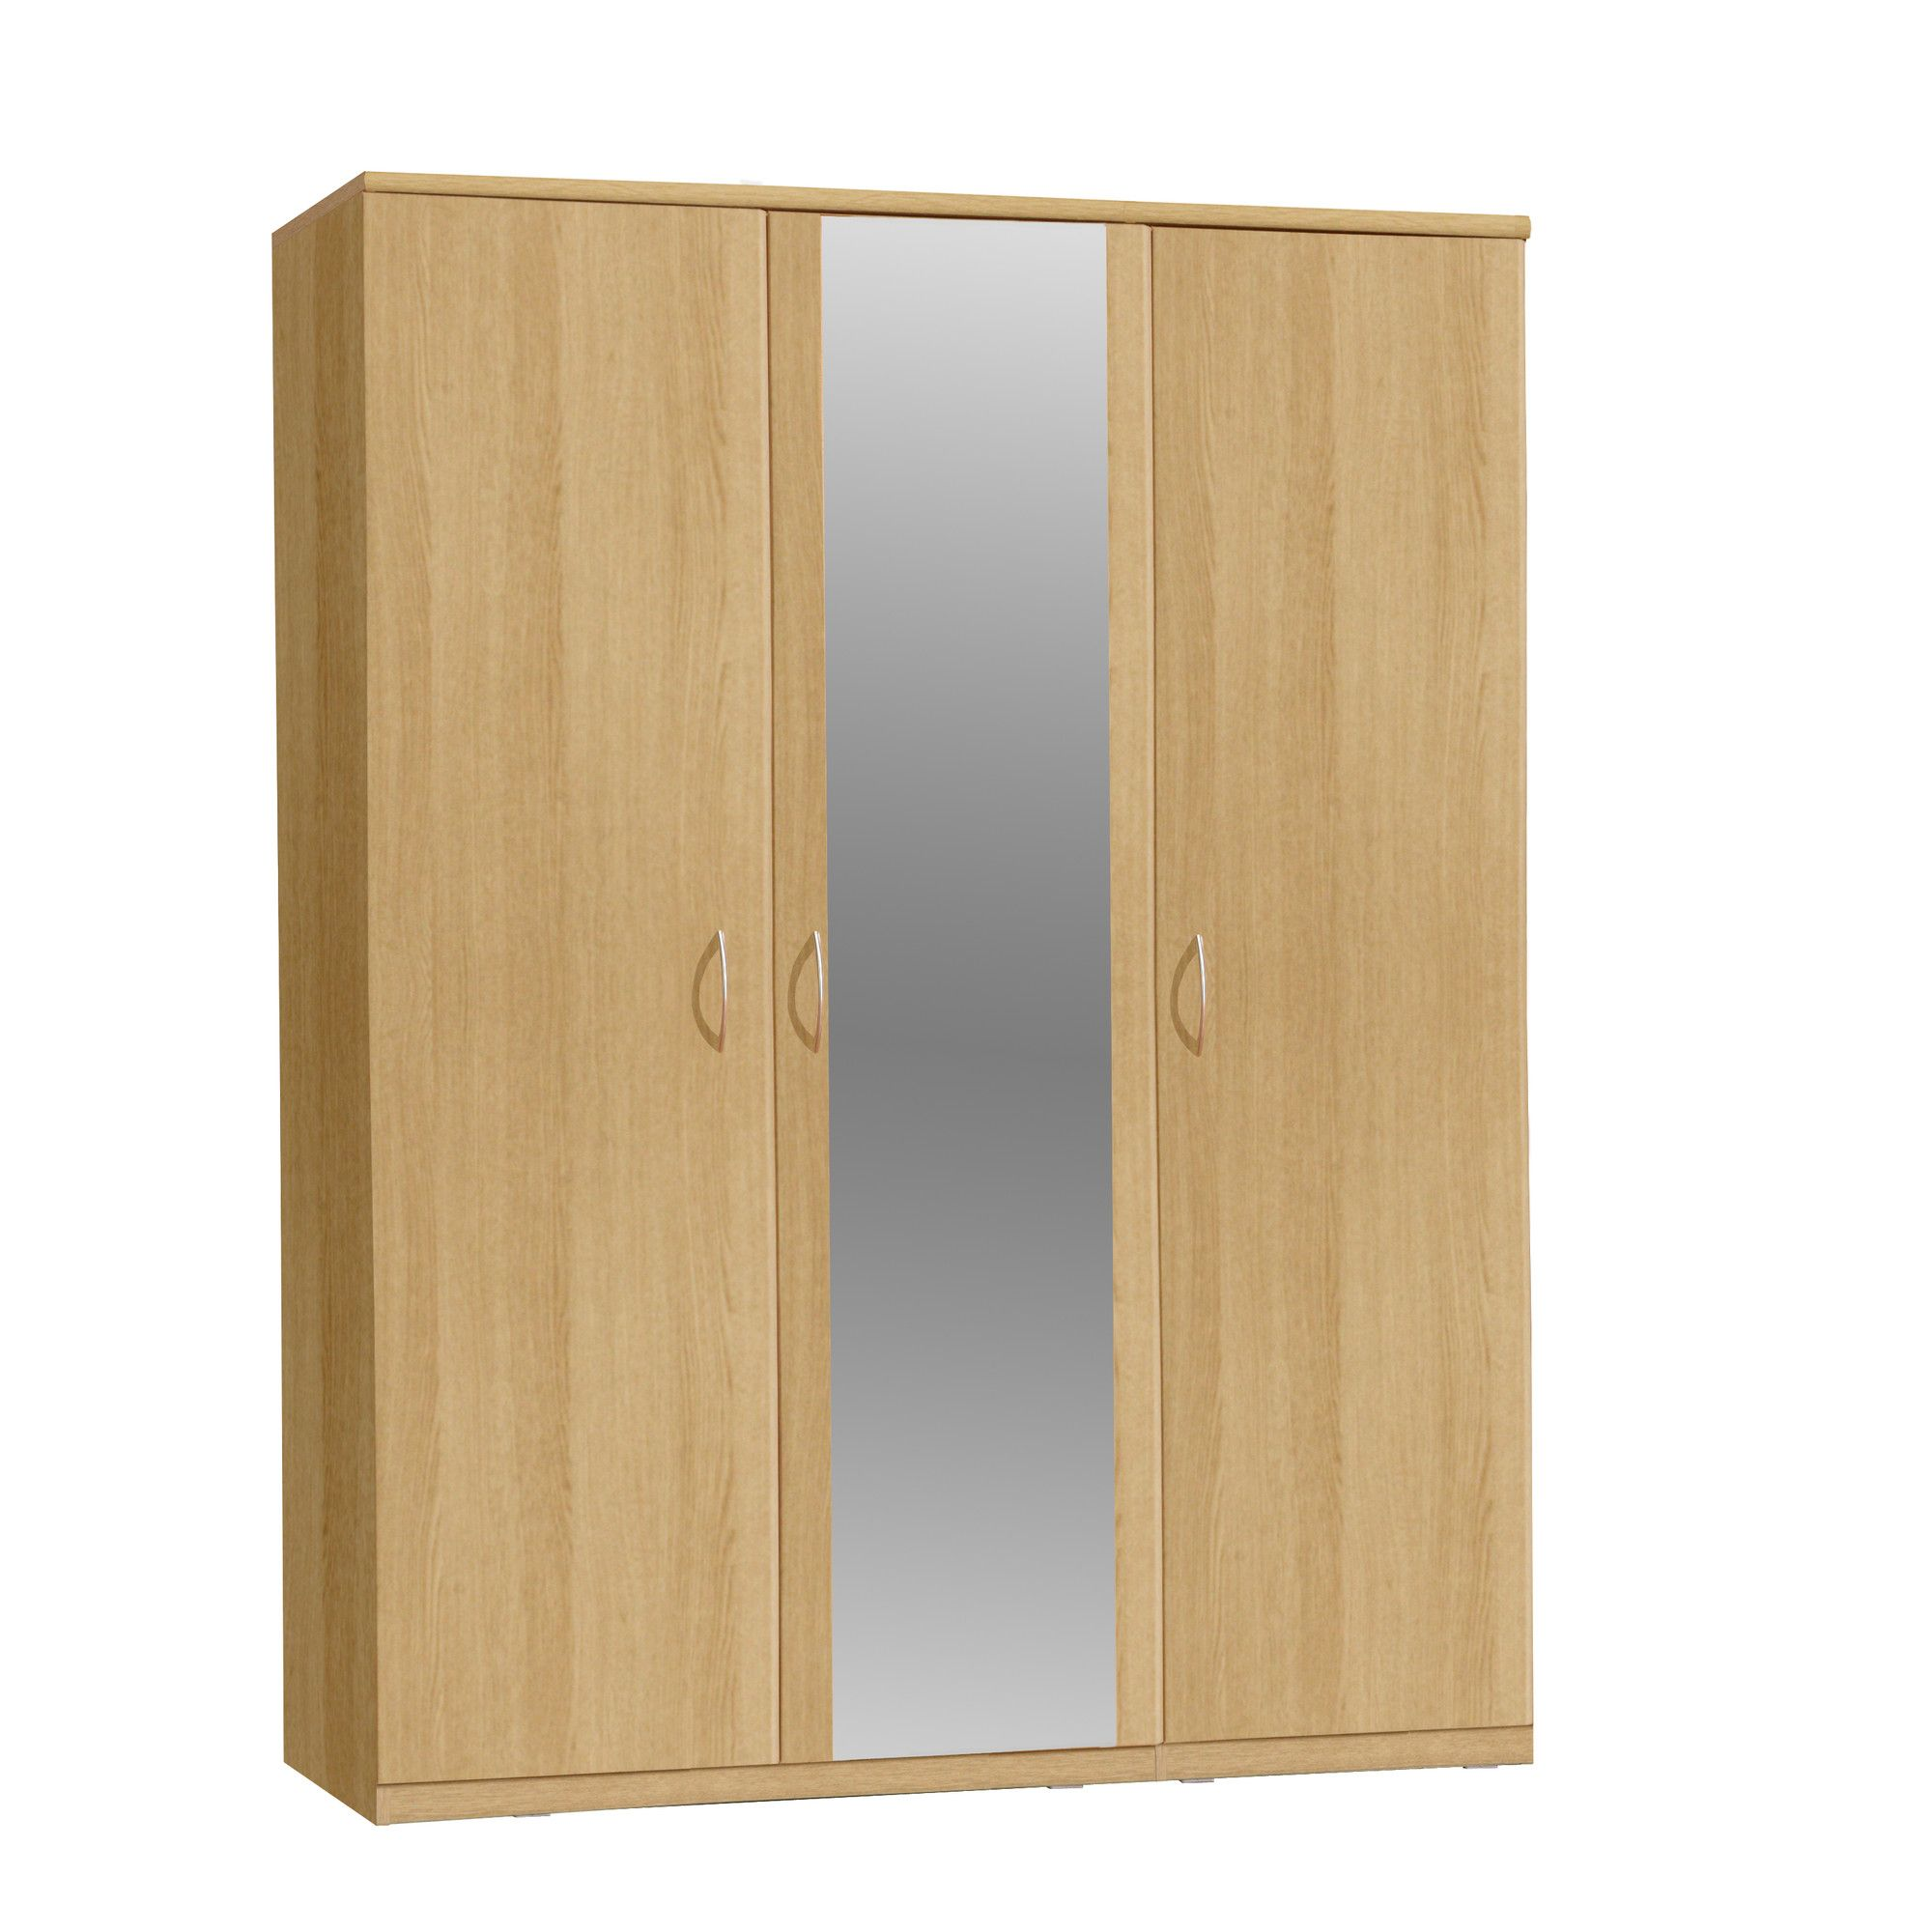 Forte Onyx Three Door Wardrobe with Centre Mirror at Tesco Direct